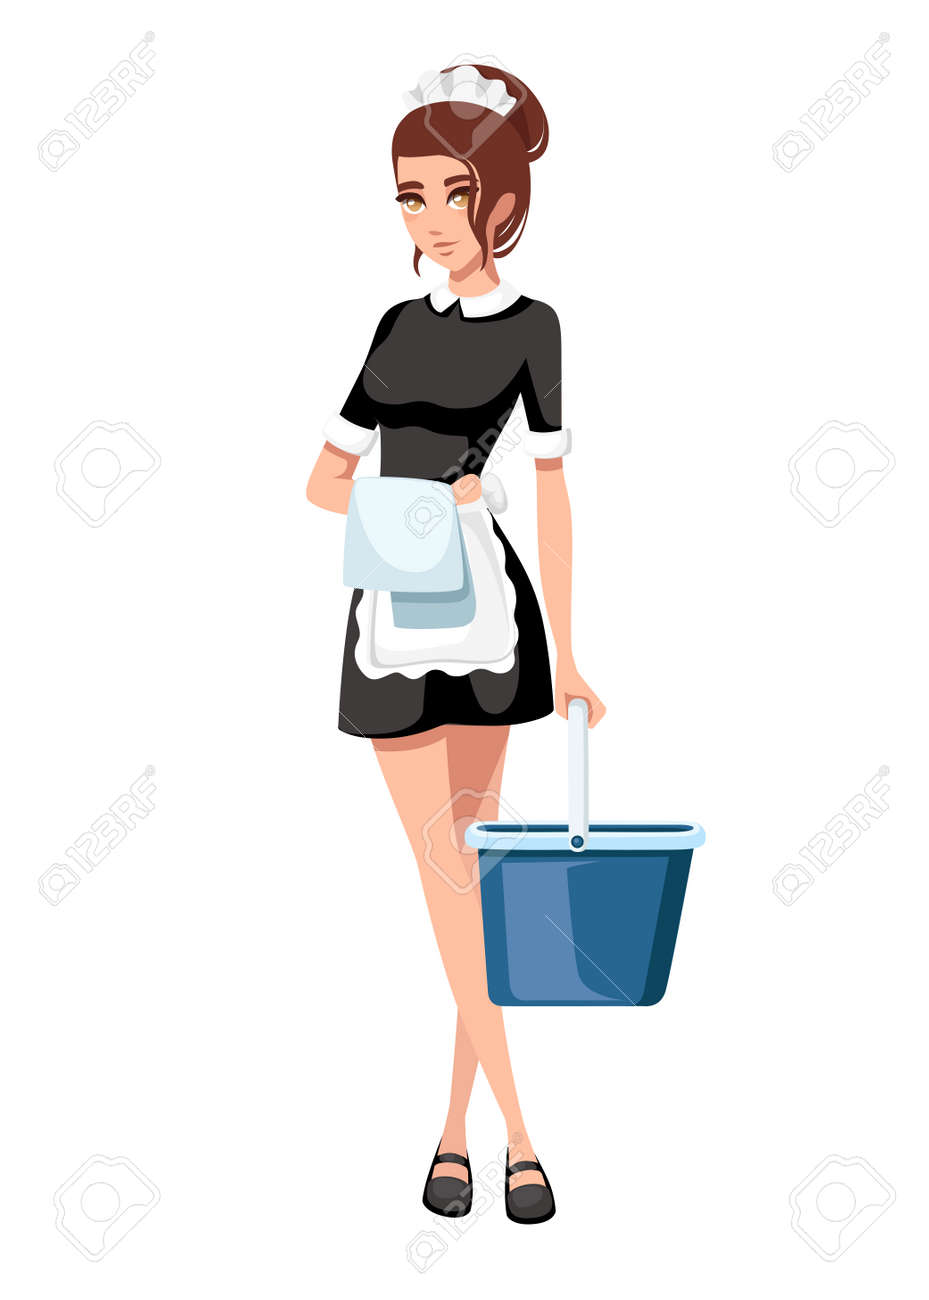 Beautiful smiling maid in classic french outfit. Cartoon character design. Women with brown short hair. Maid holding cleaning bucket and towel. Flat vector illustration isolated on white background. - 112411521